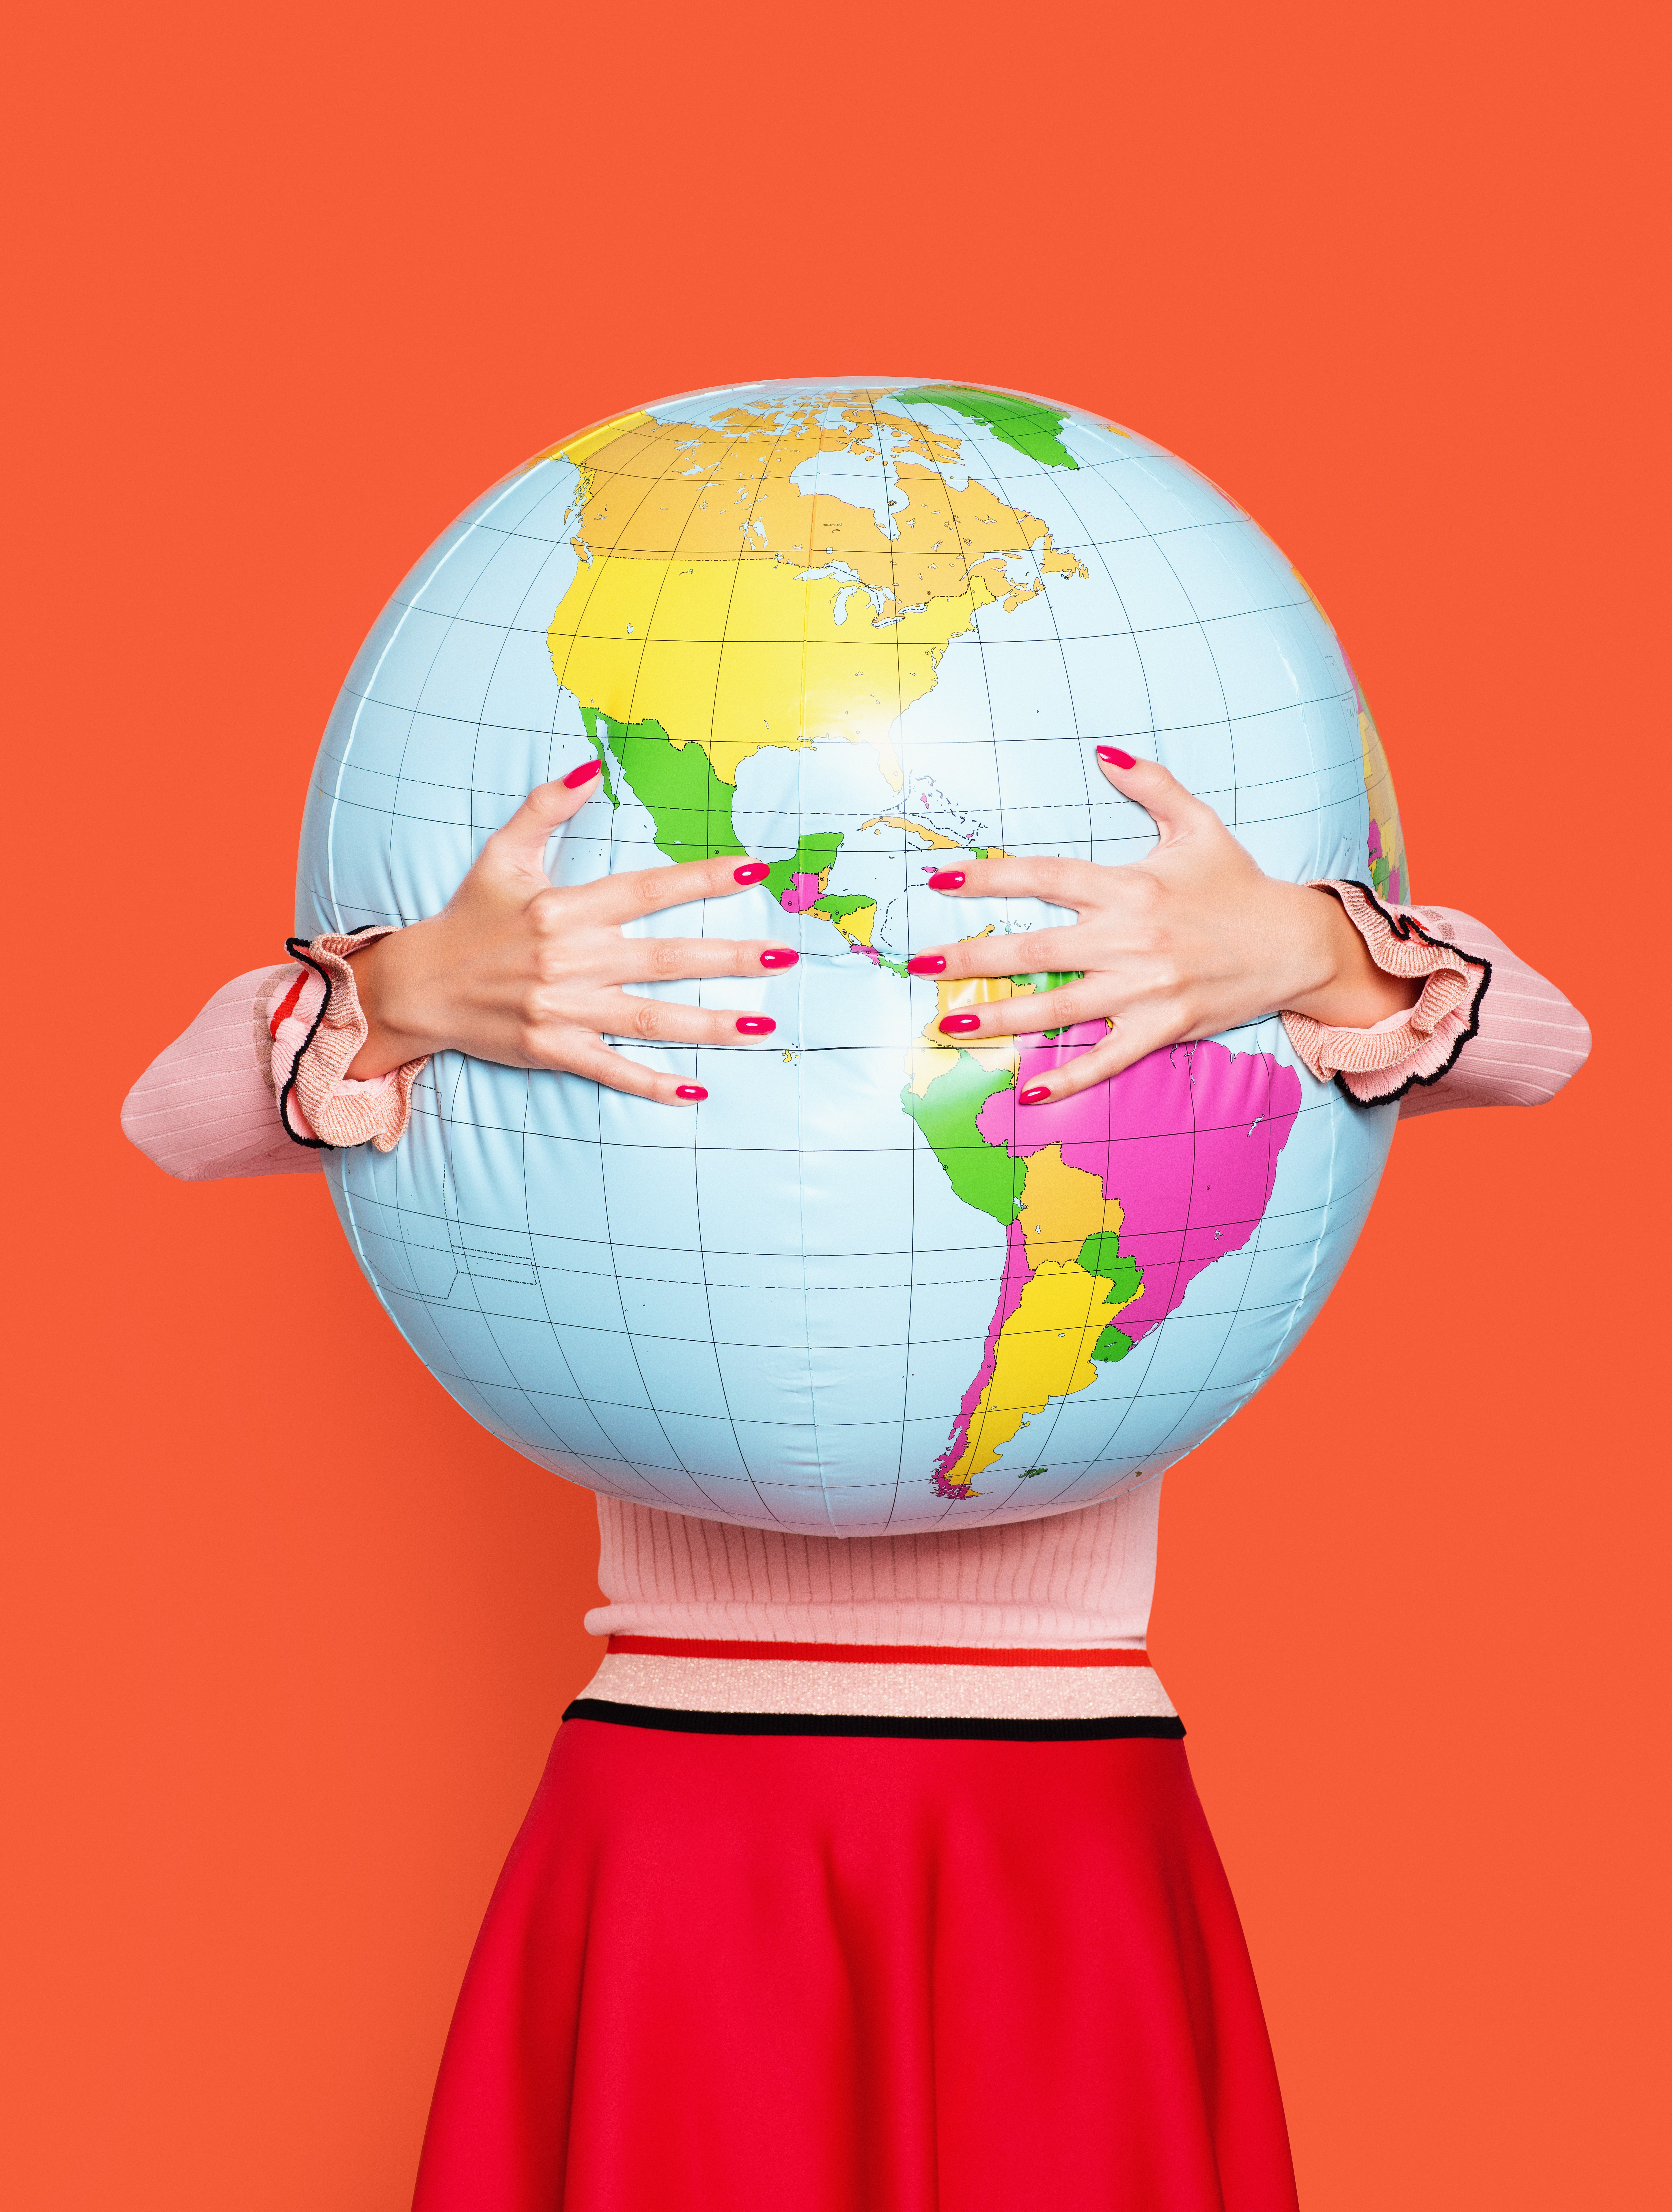 Large inflatable globe getting hugged by a woman in a red skirt.